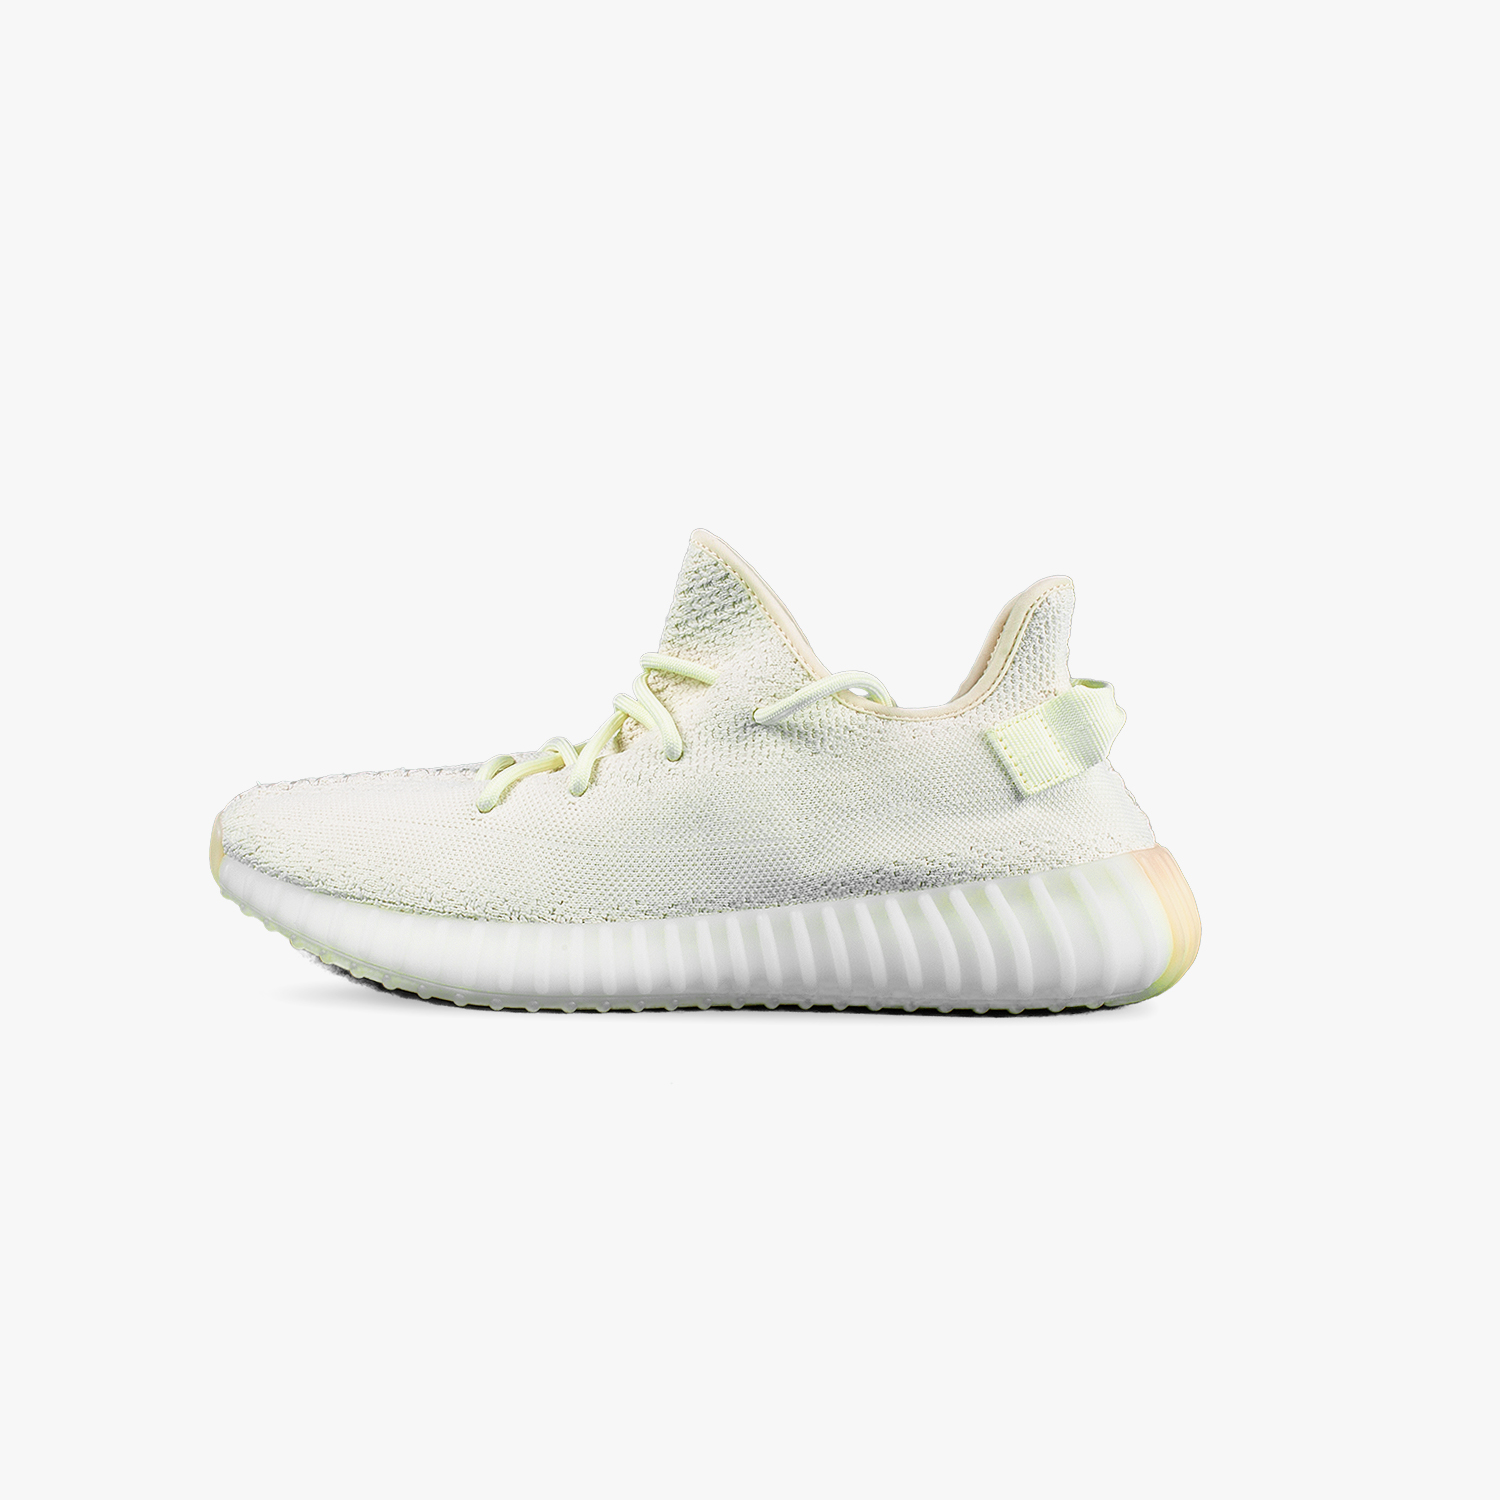 newest collection eee8b 0aa4a Adidas Yeezy Boost 350 V2